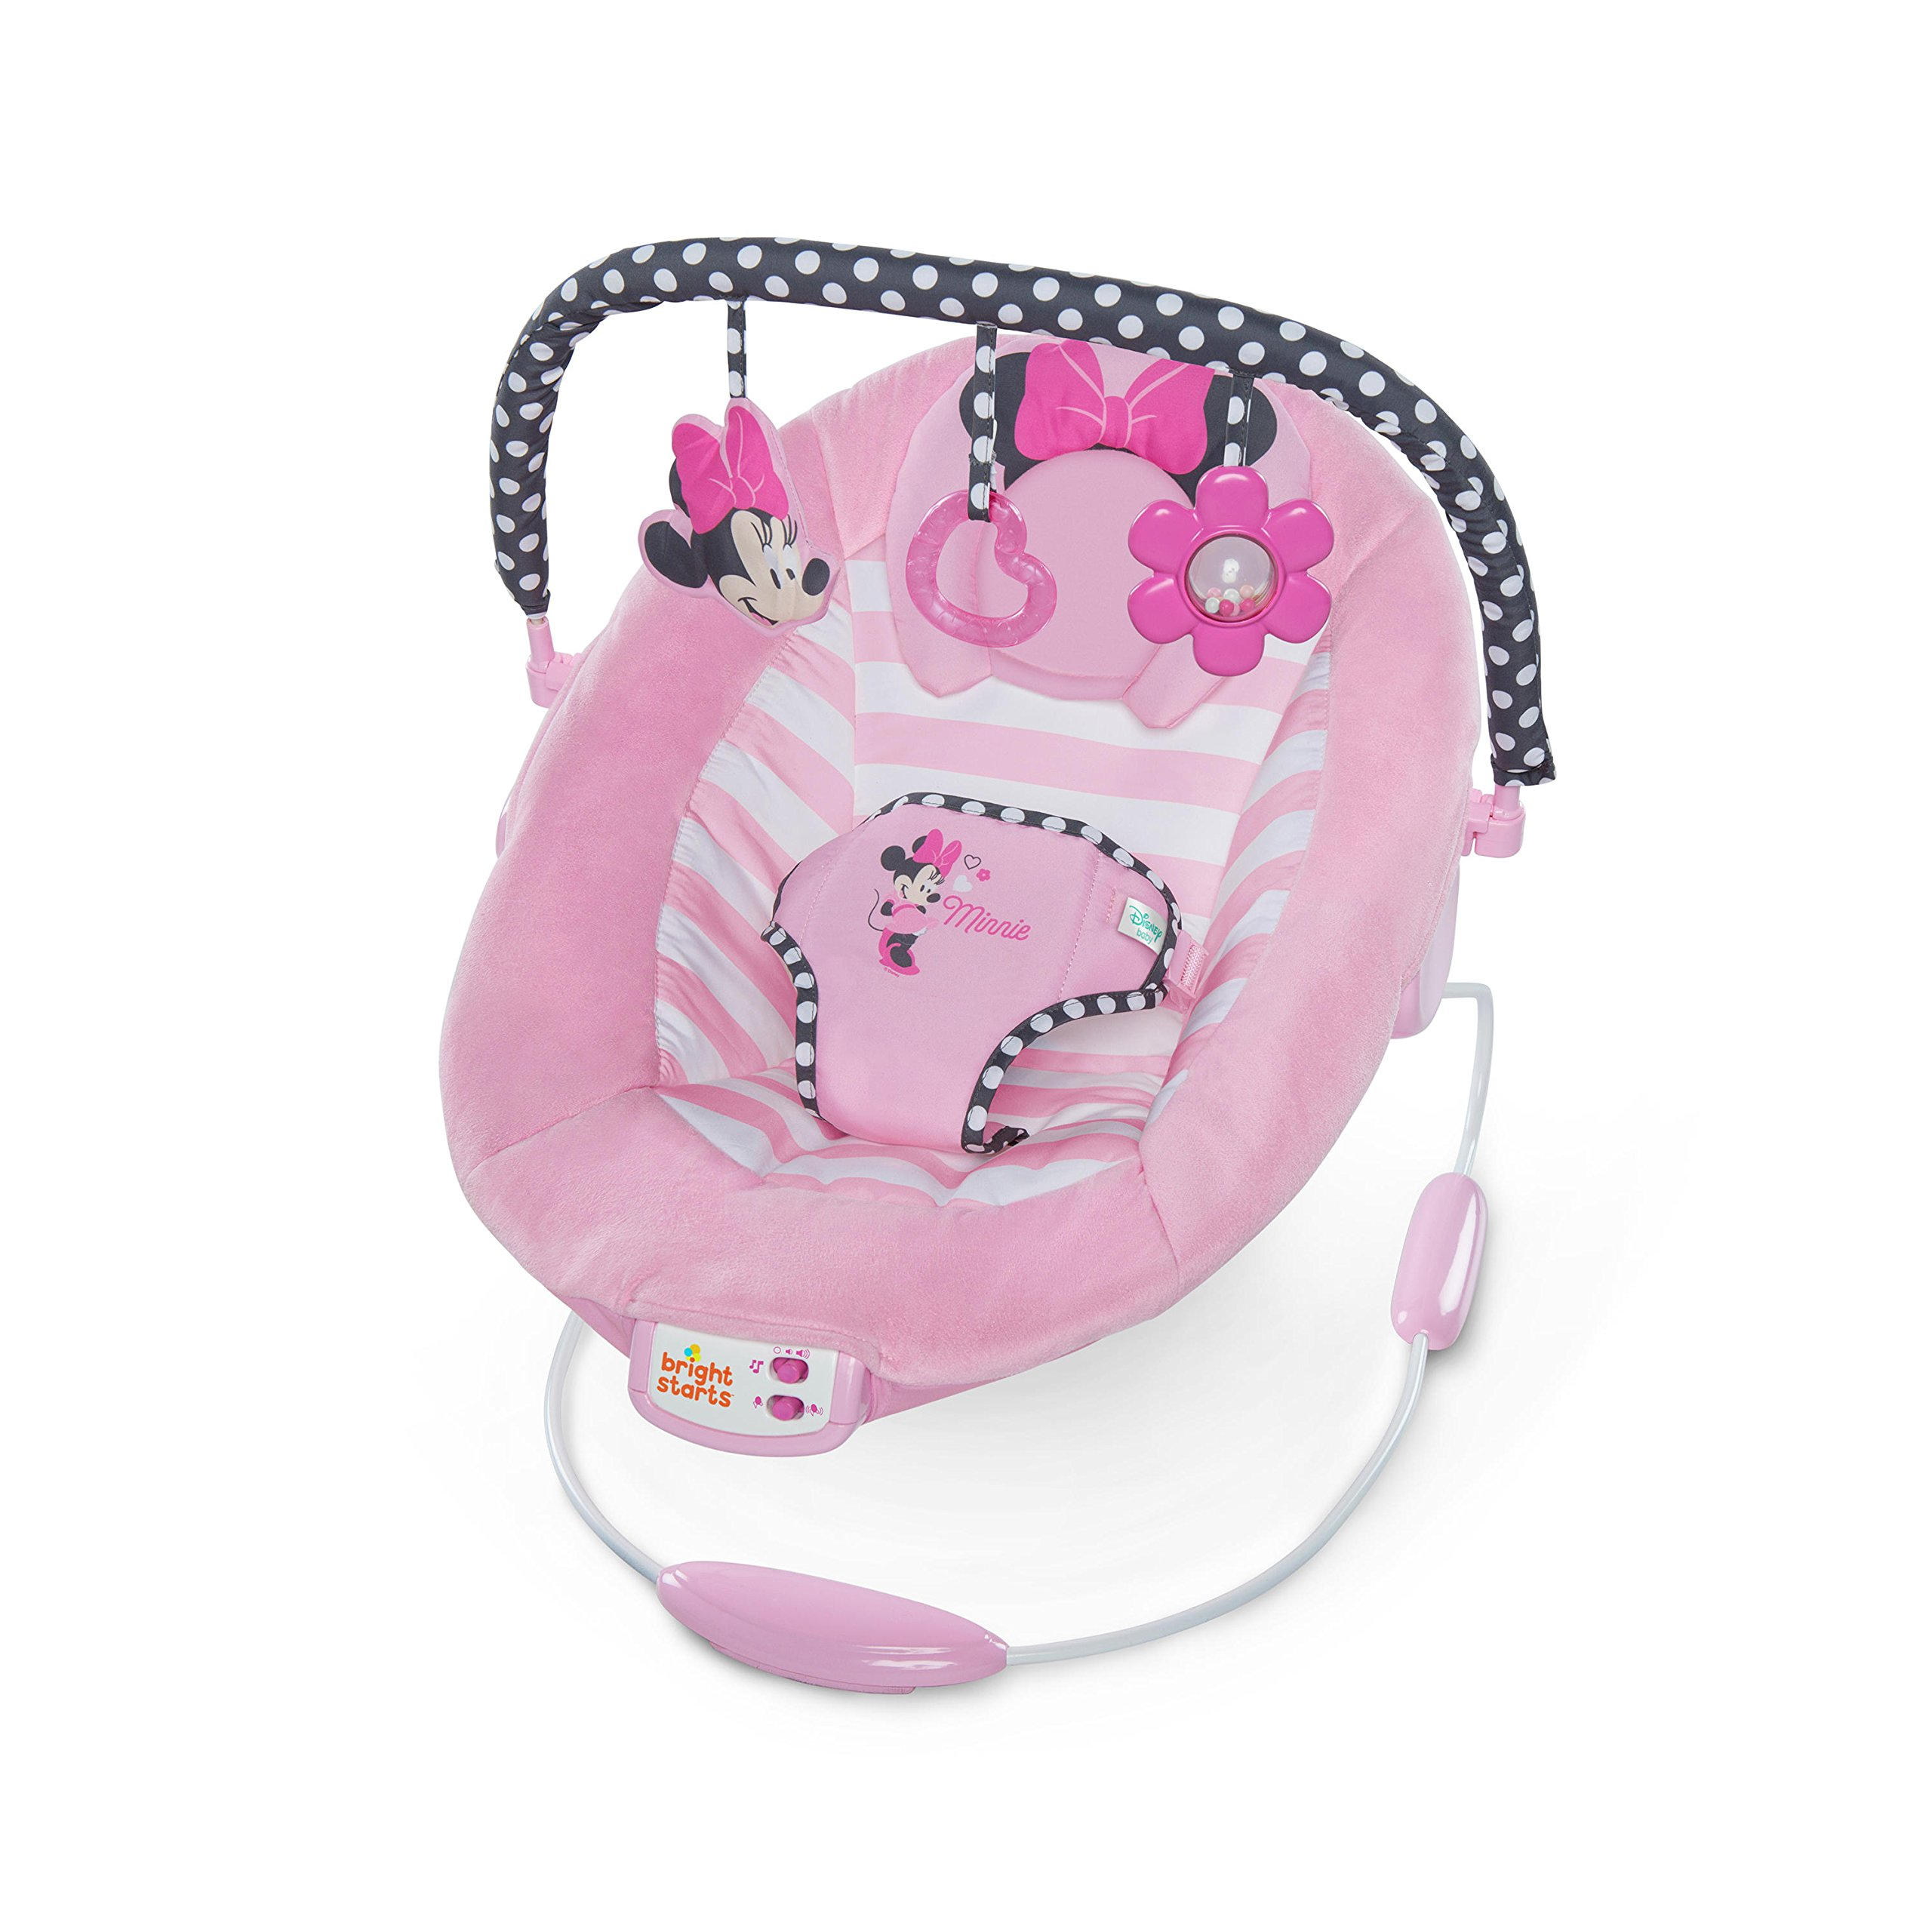 Disney Baby - Hamaca de Minnie Mouse, Blushing Bows product image